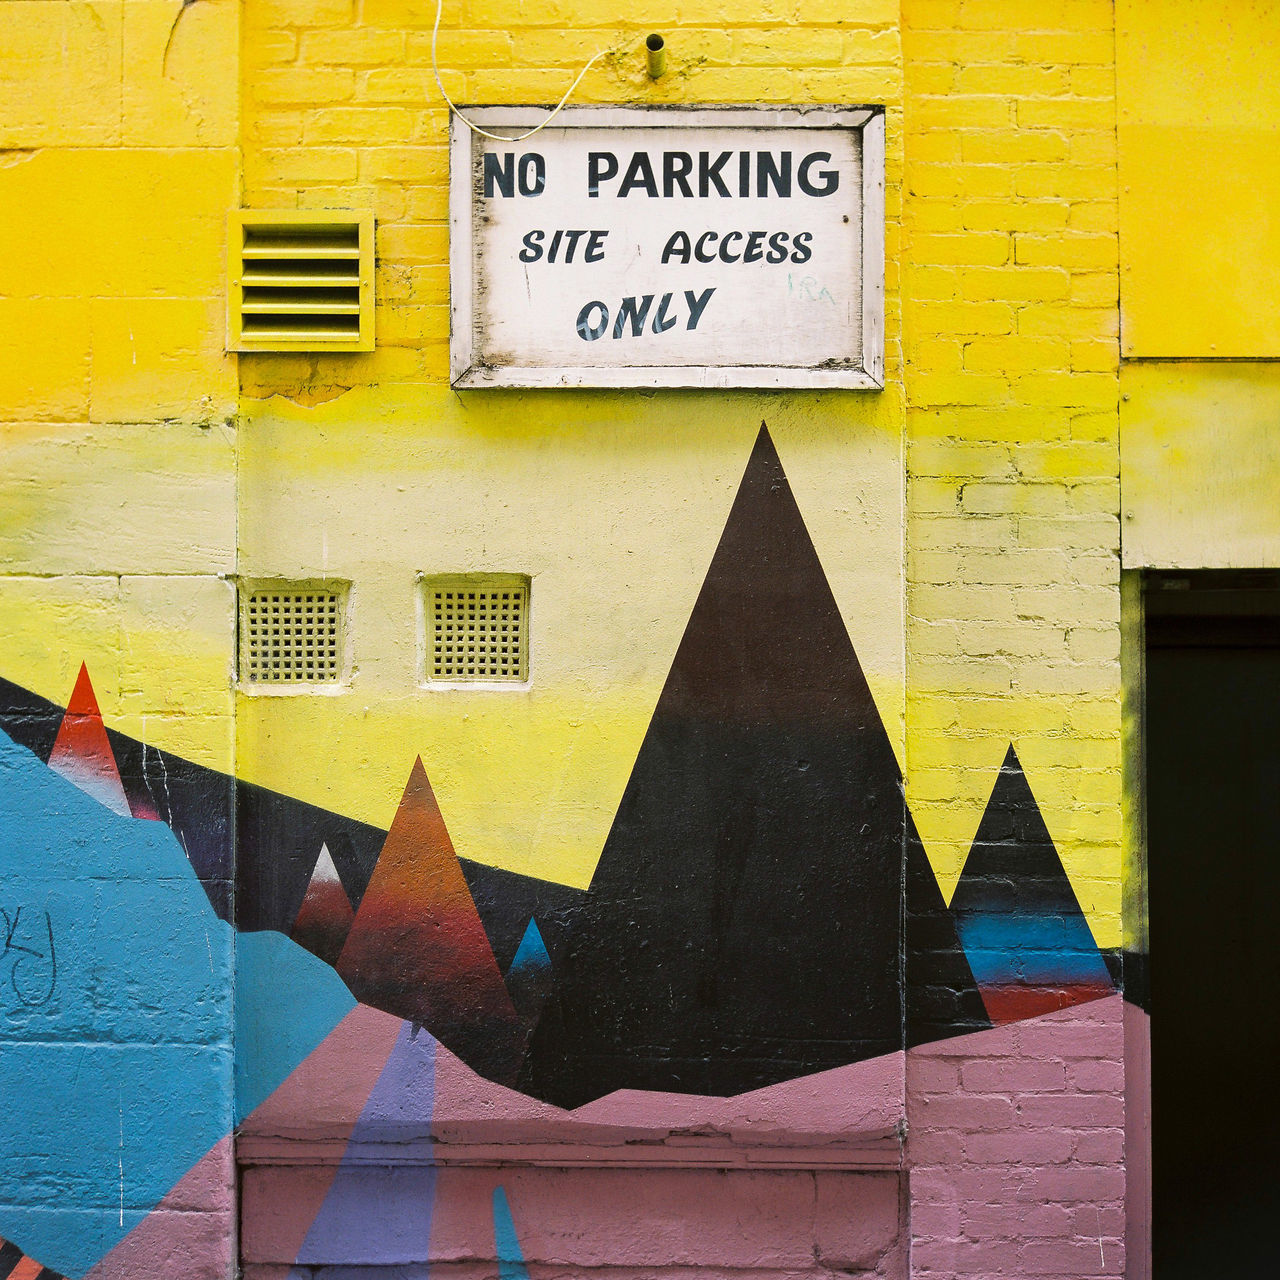 Colourful abstract artwork points toward a no parking sign in a small alley in Glasgow's city centre. Abstract Angles Art Brick Building Exterior Color Colorful Day Film Funky Glasgow  Graffiti Mural Neighborhood Map No Parking No Parking Sign Outdoors Scotland Sign Square Text Triangle Wall - Building Feature Western Script Yellow